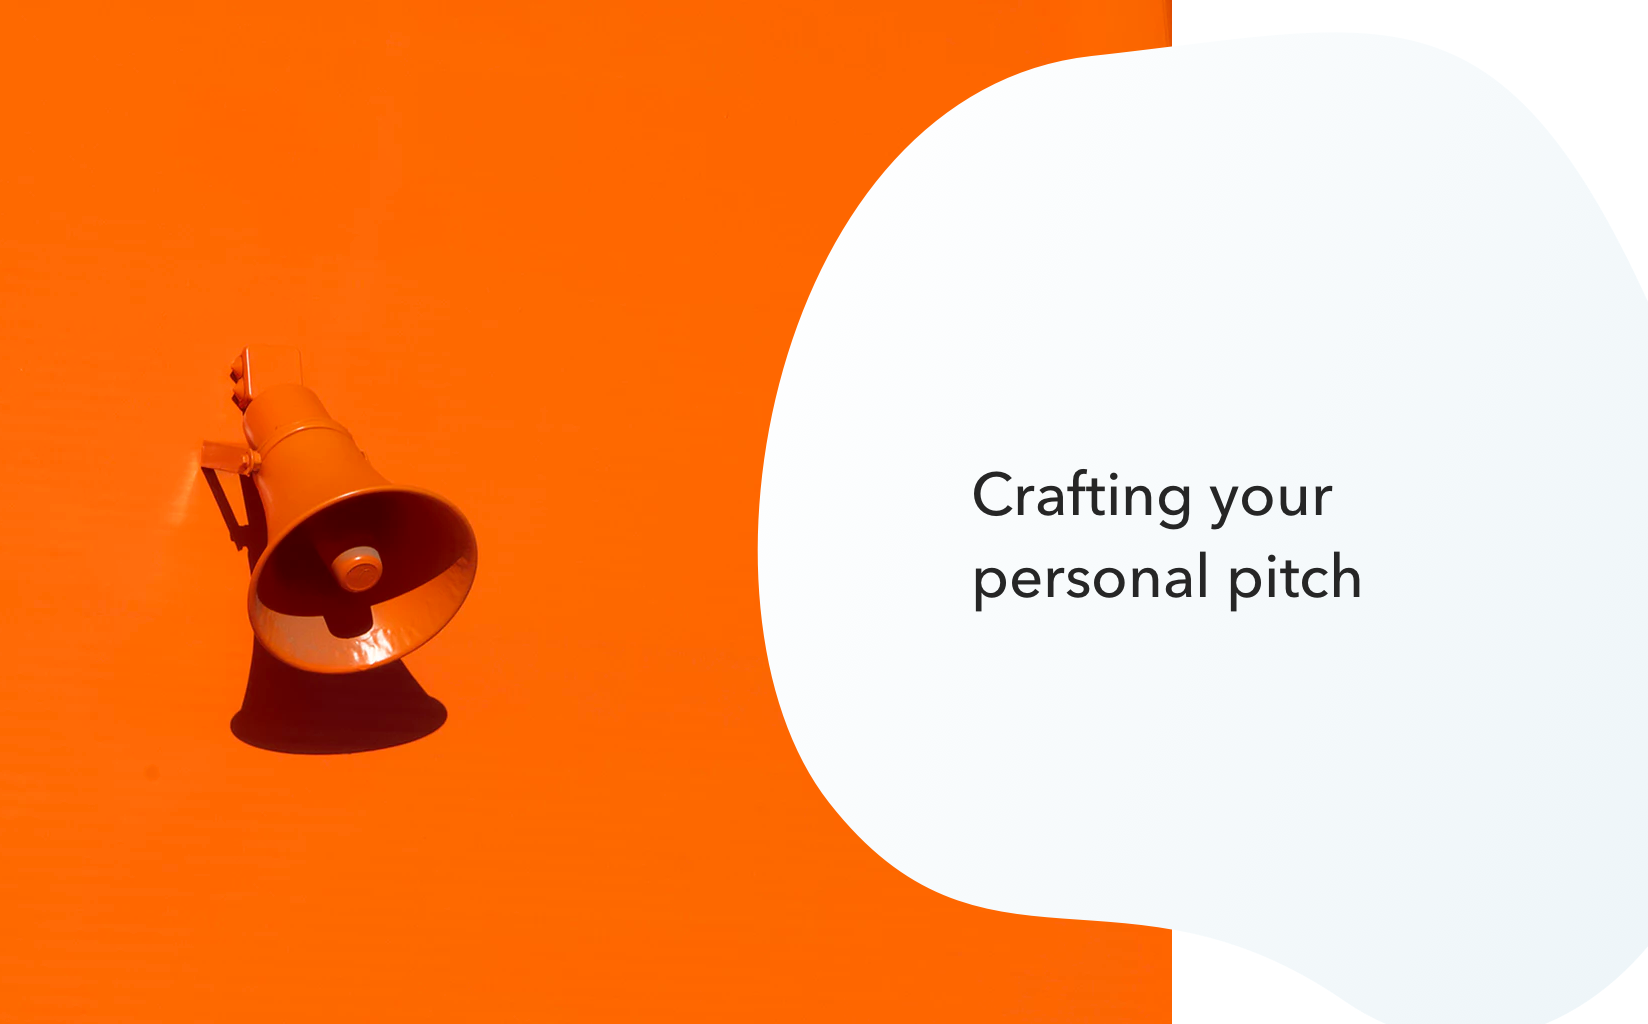 Crafting your personal pitch - Noteworthy - The Journal Blog